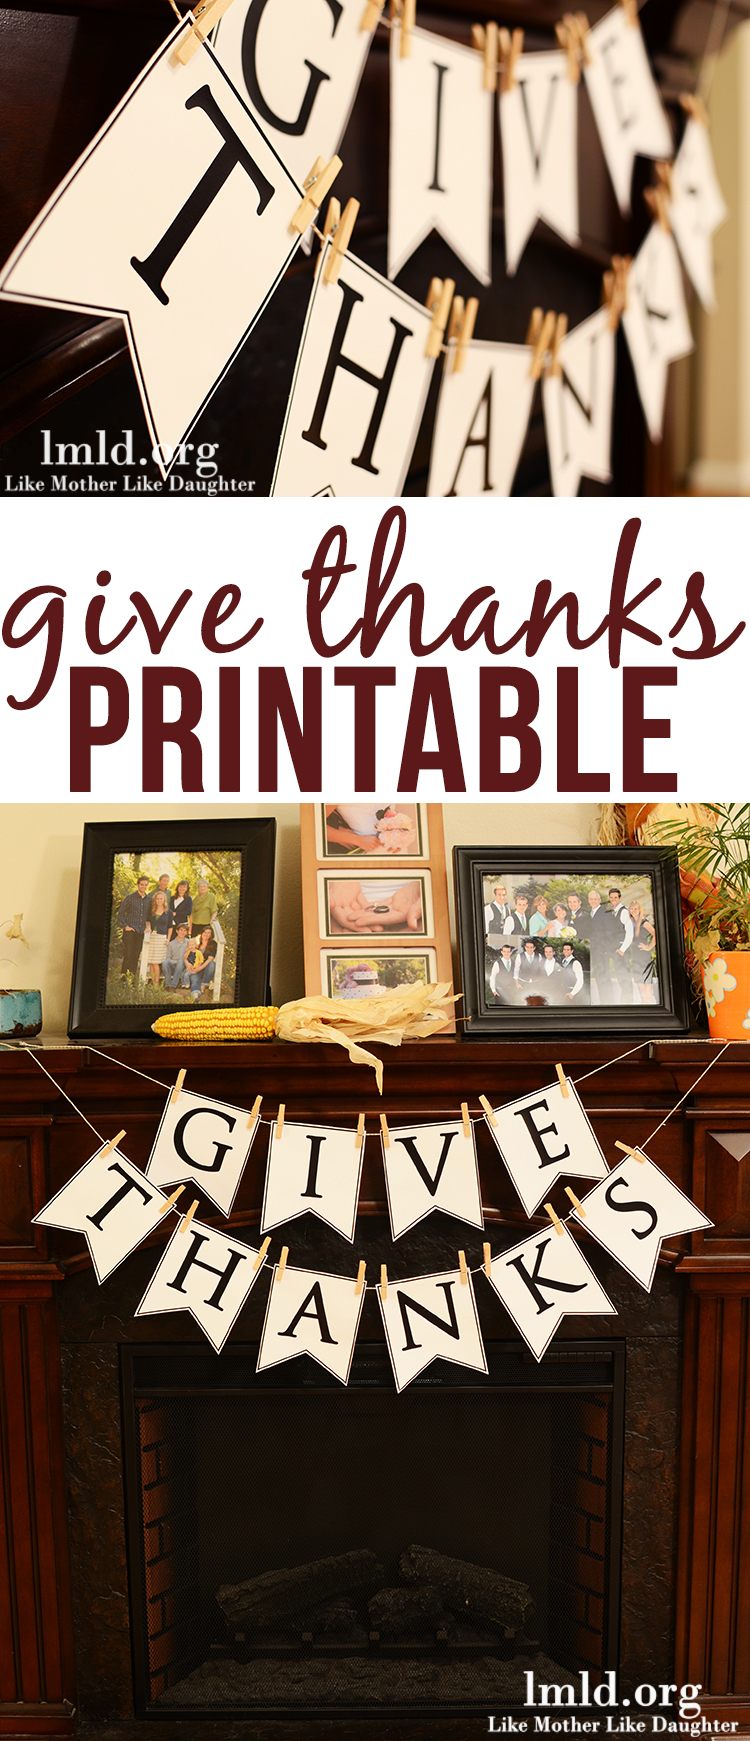 Give Thanks Banner - a cute printable for this give thanks banner to celebrate and be thankful this Thanksgiving!